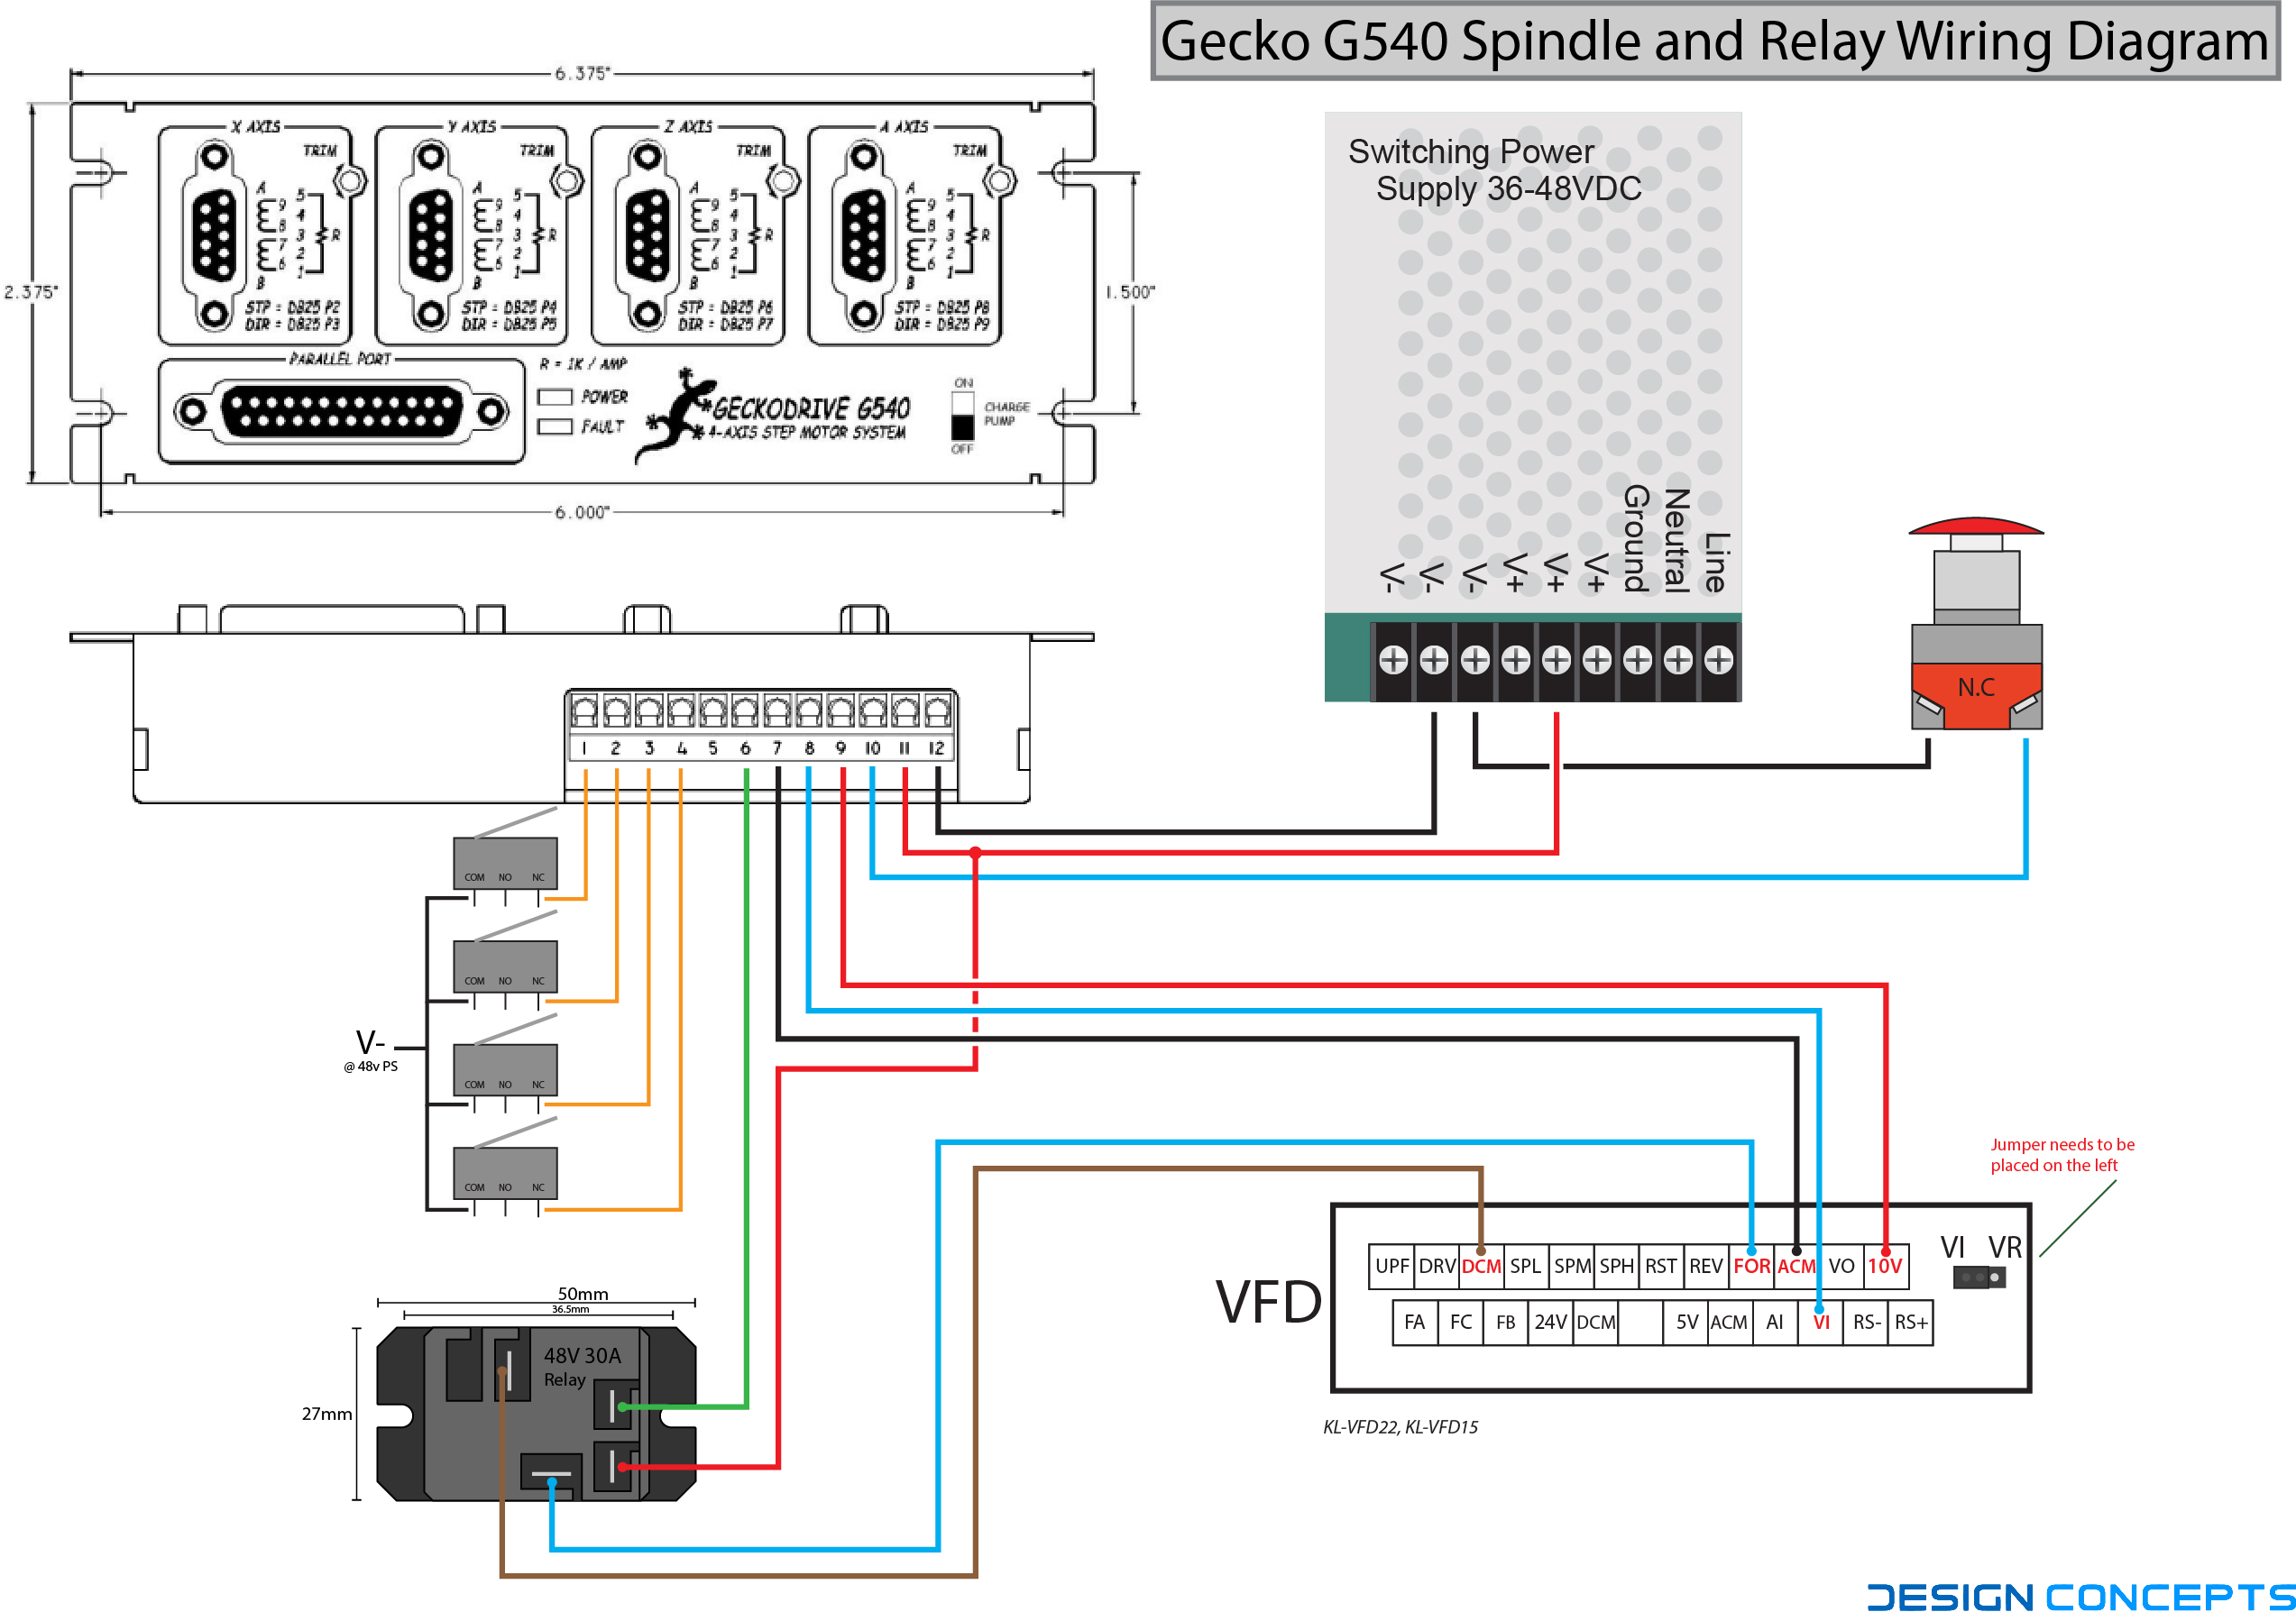 hight resolution of g540 spindle and relay wiring diagram the blog spindle wiring diagram g540 wiring diagram with spindle